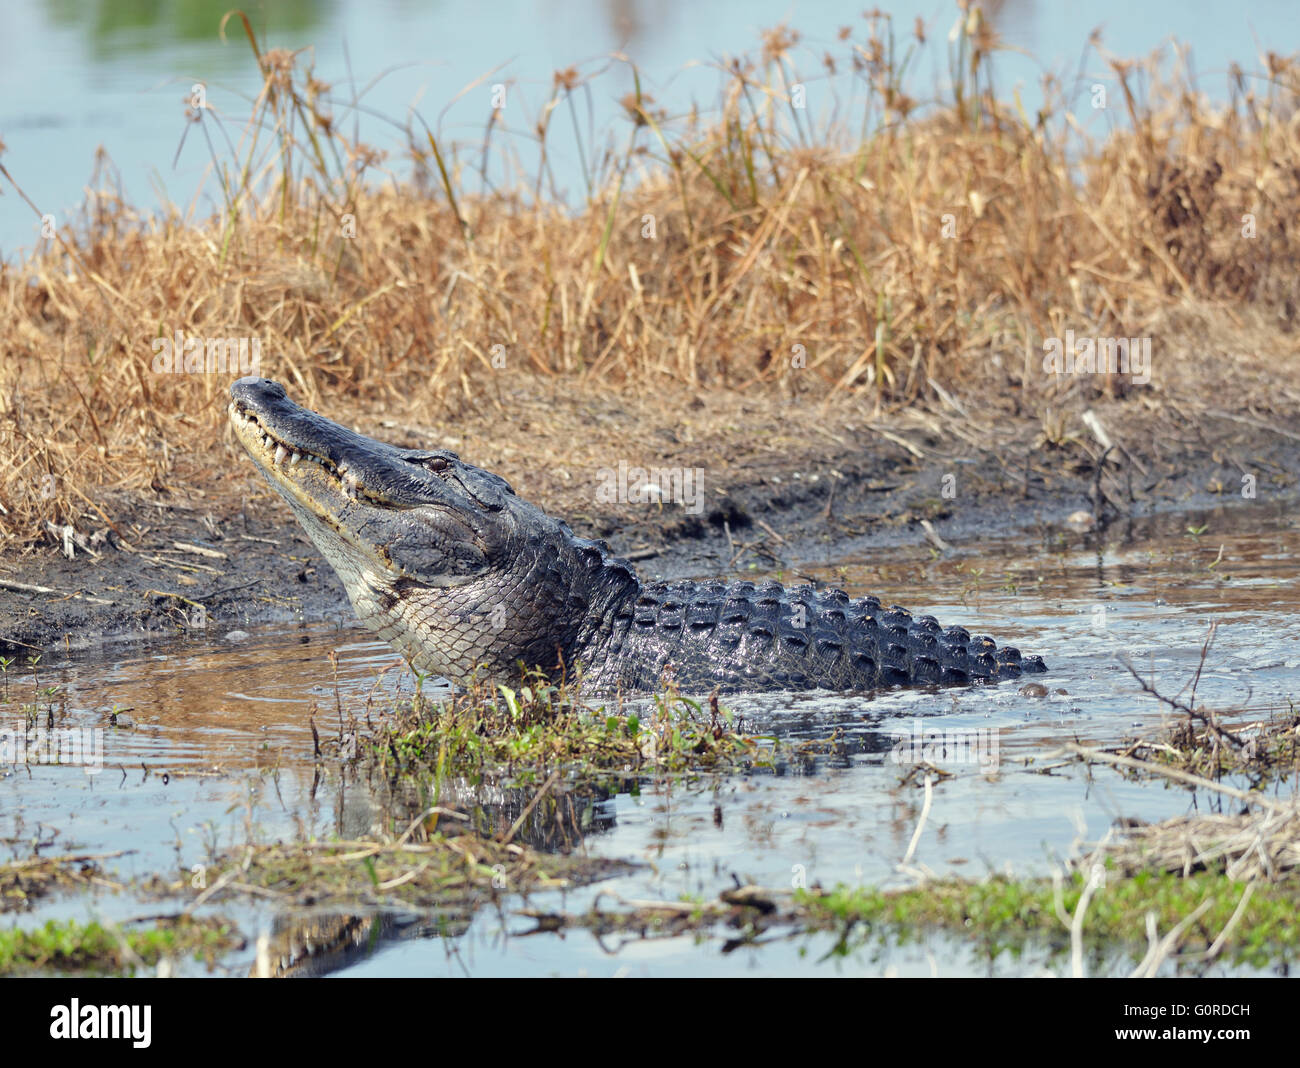 Large Bull Male Alligator Calls for a Mate in Florida Swamp - Stock Image